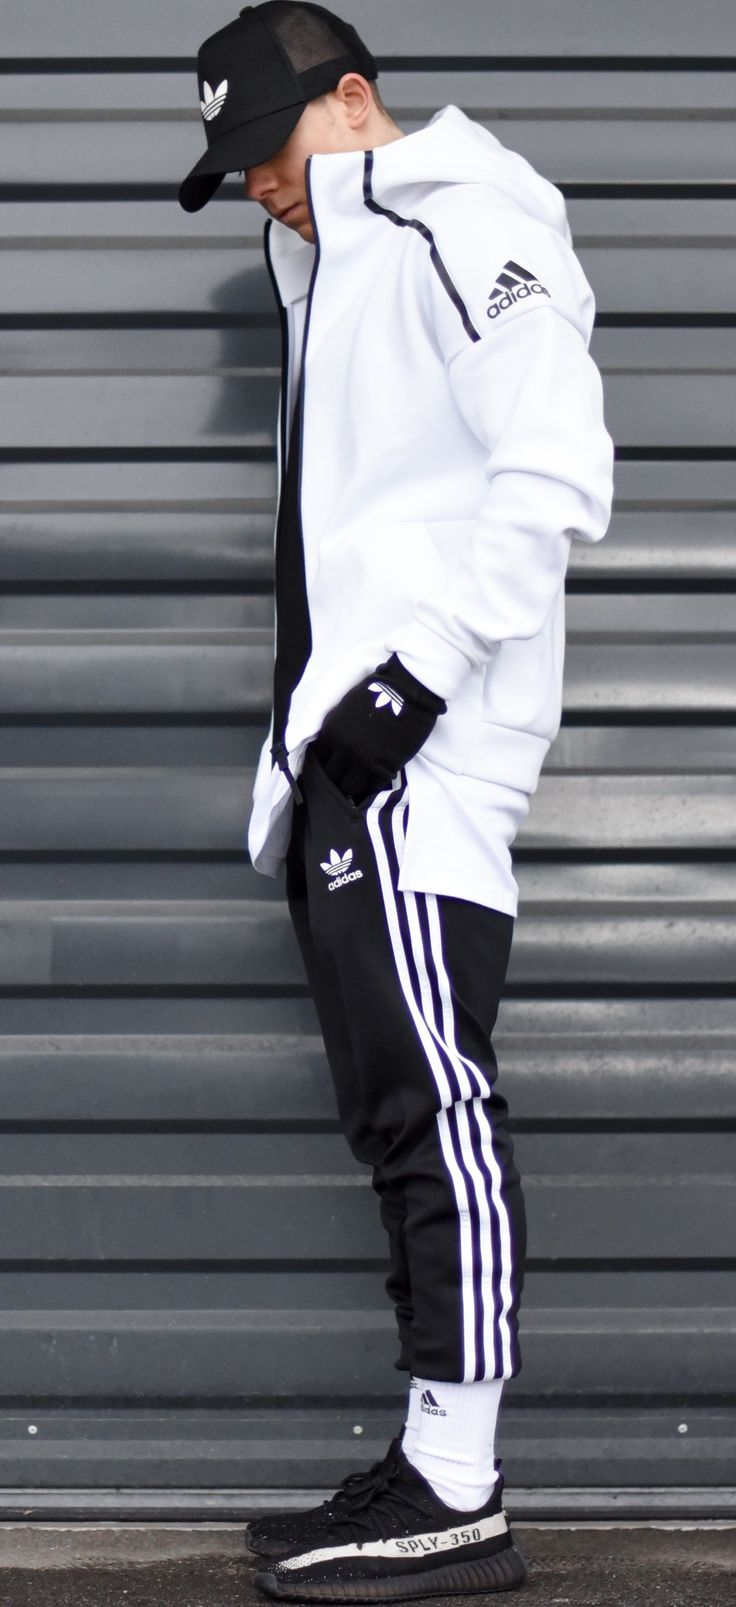 1000+ Ideas About Adidas Outfit On Pinterest | Adidas Fashion Adidas And Outfit Goals